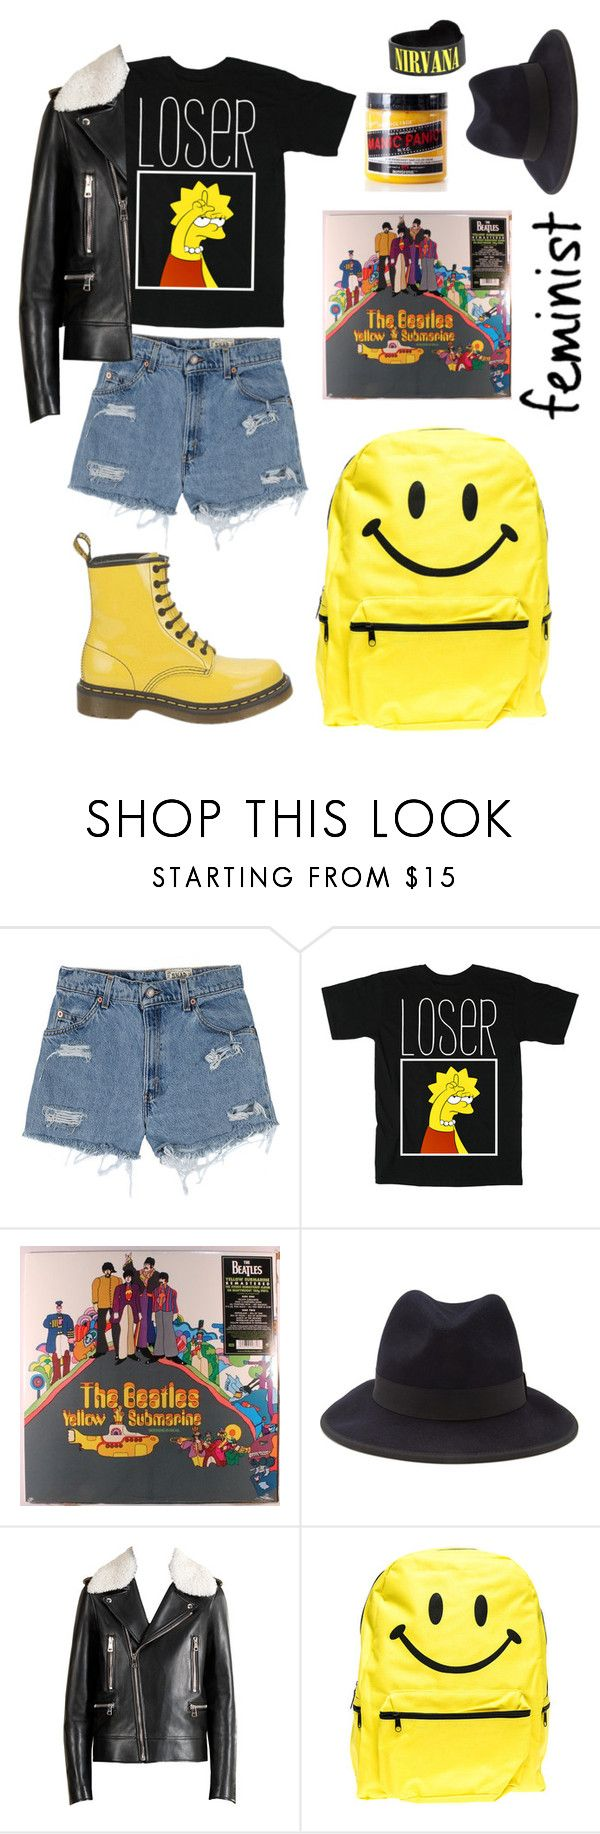 """Lisa Simpson shirt"" by ginaisanerd ❤ liked on Polyvore featuring Levi's, Submarine, Hot Topic, Forever 21, Gucci, Dr. Martens and Hollywood Mirror"